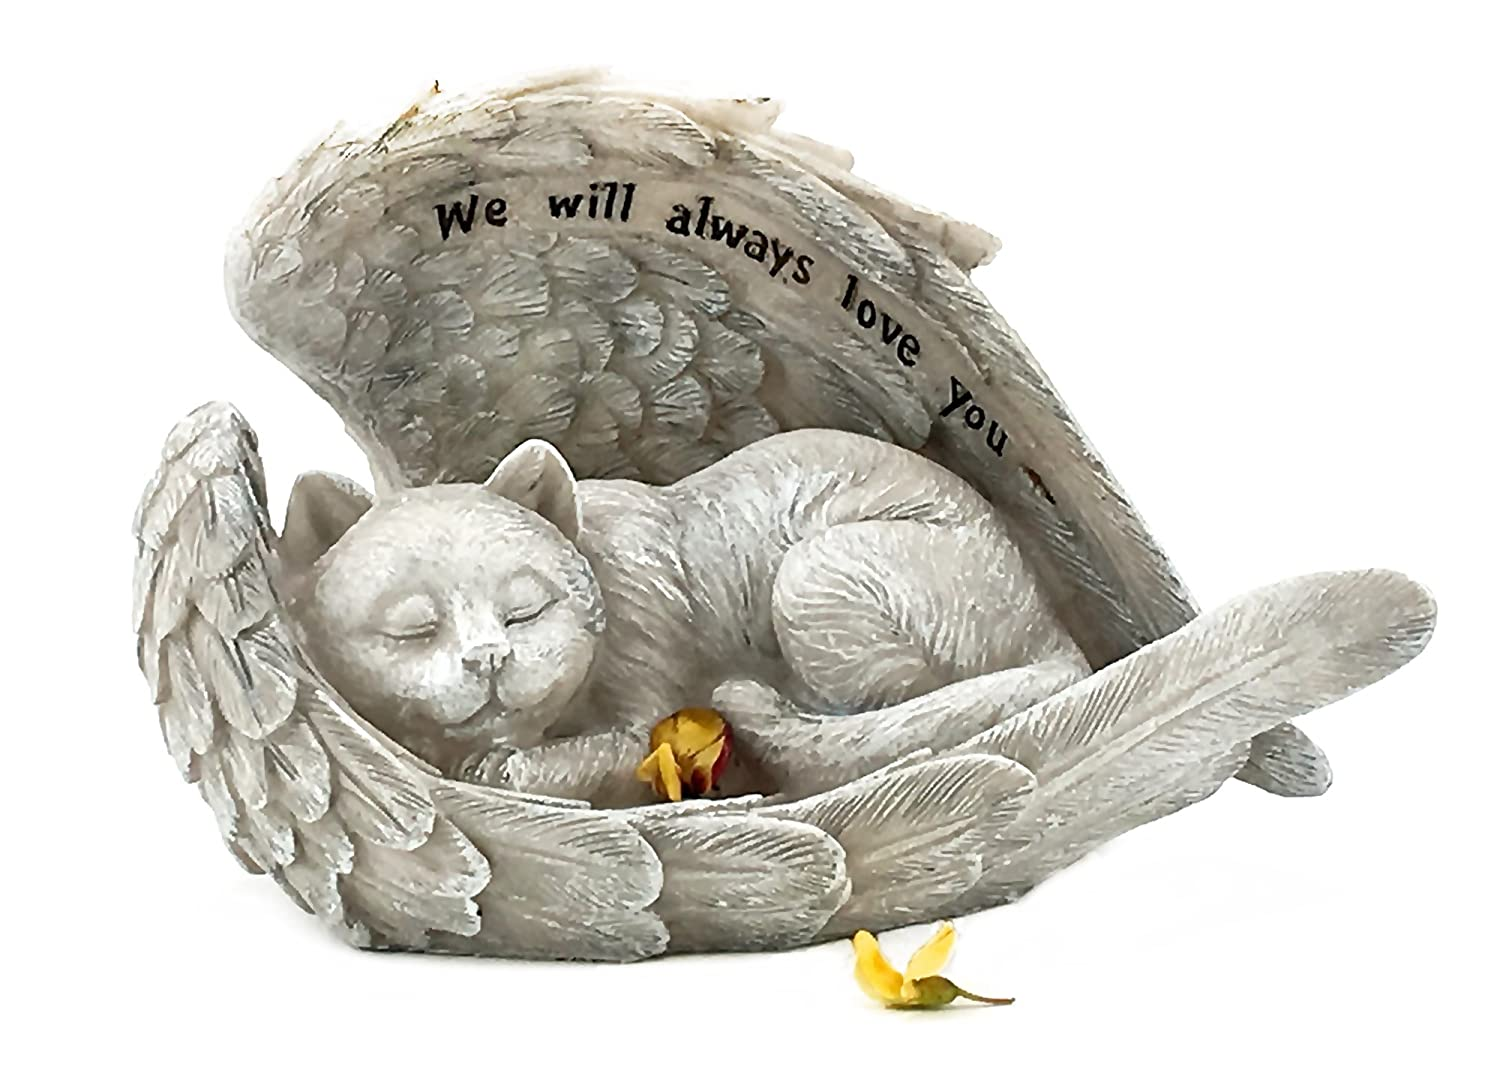 Elaan31 22878 Cat Sleeping in Angel Wings Pet Memorial Garden Statue We Will Always Love You